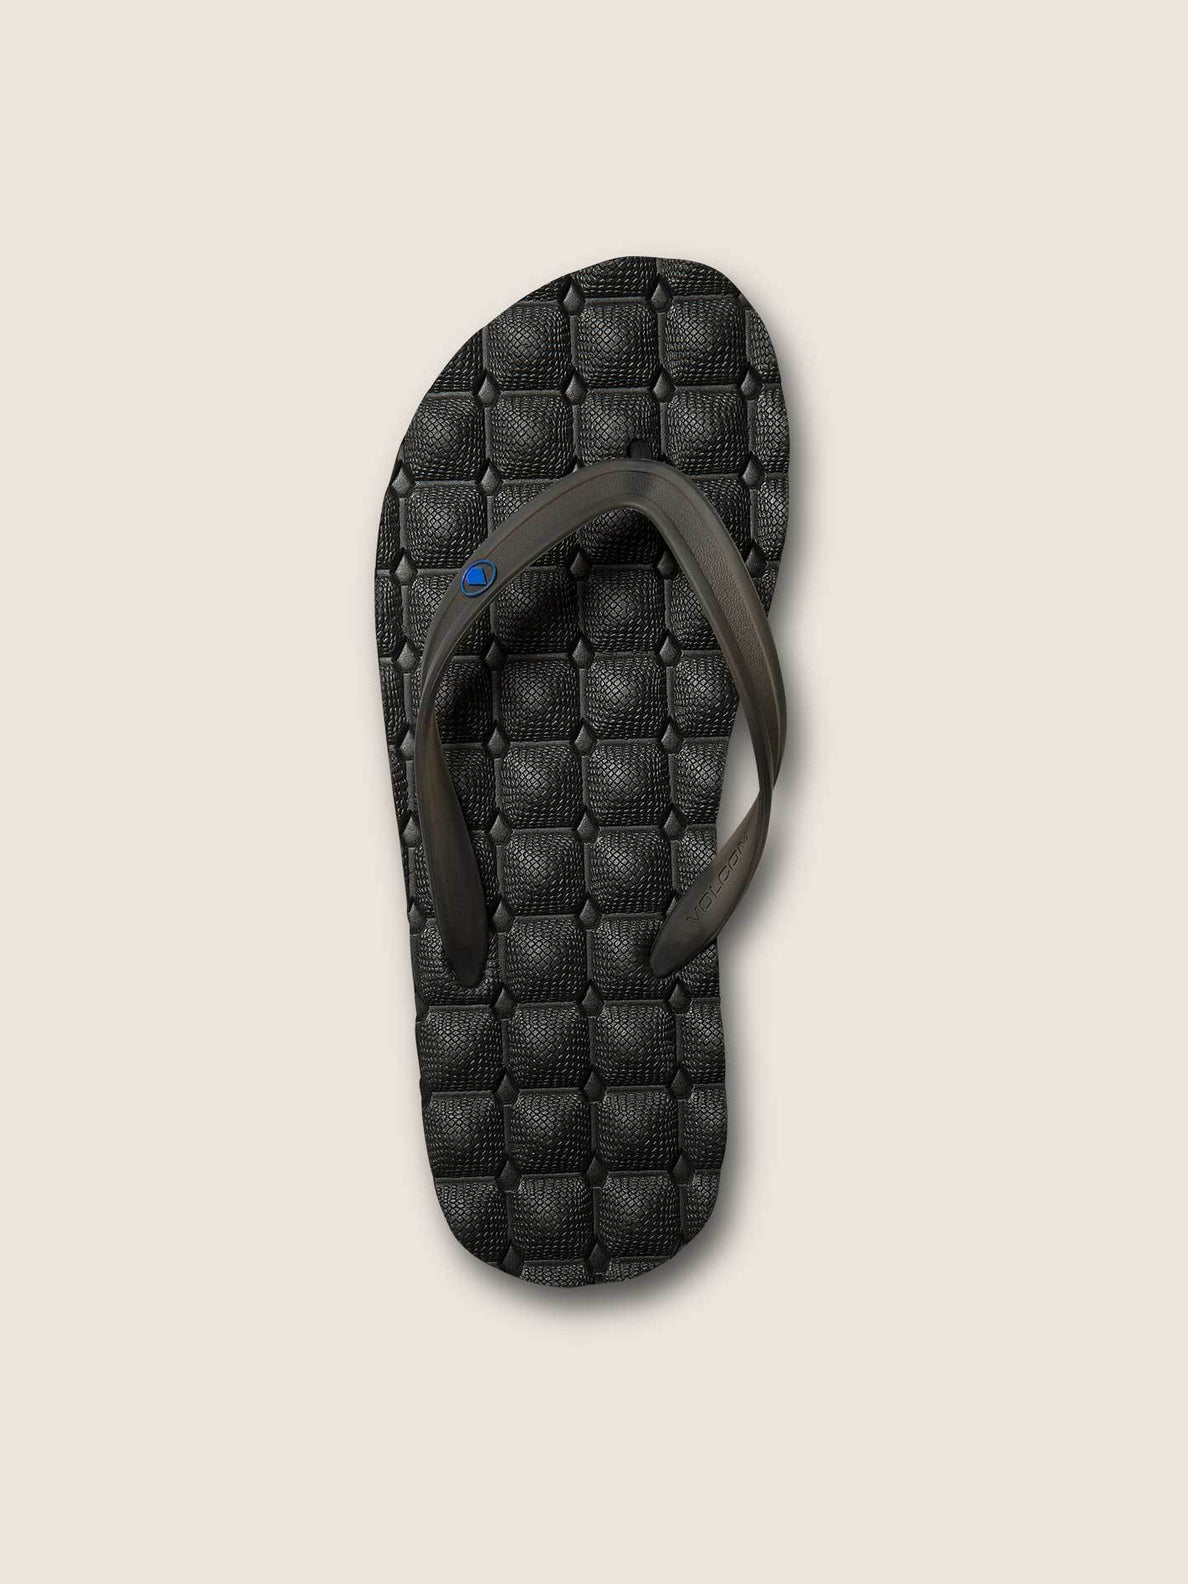 Recliner Rubber 2 Sandals In Blue Black, Alternate View